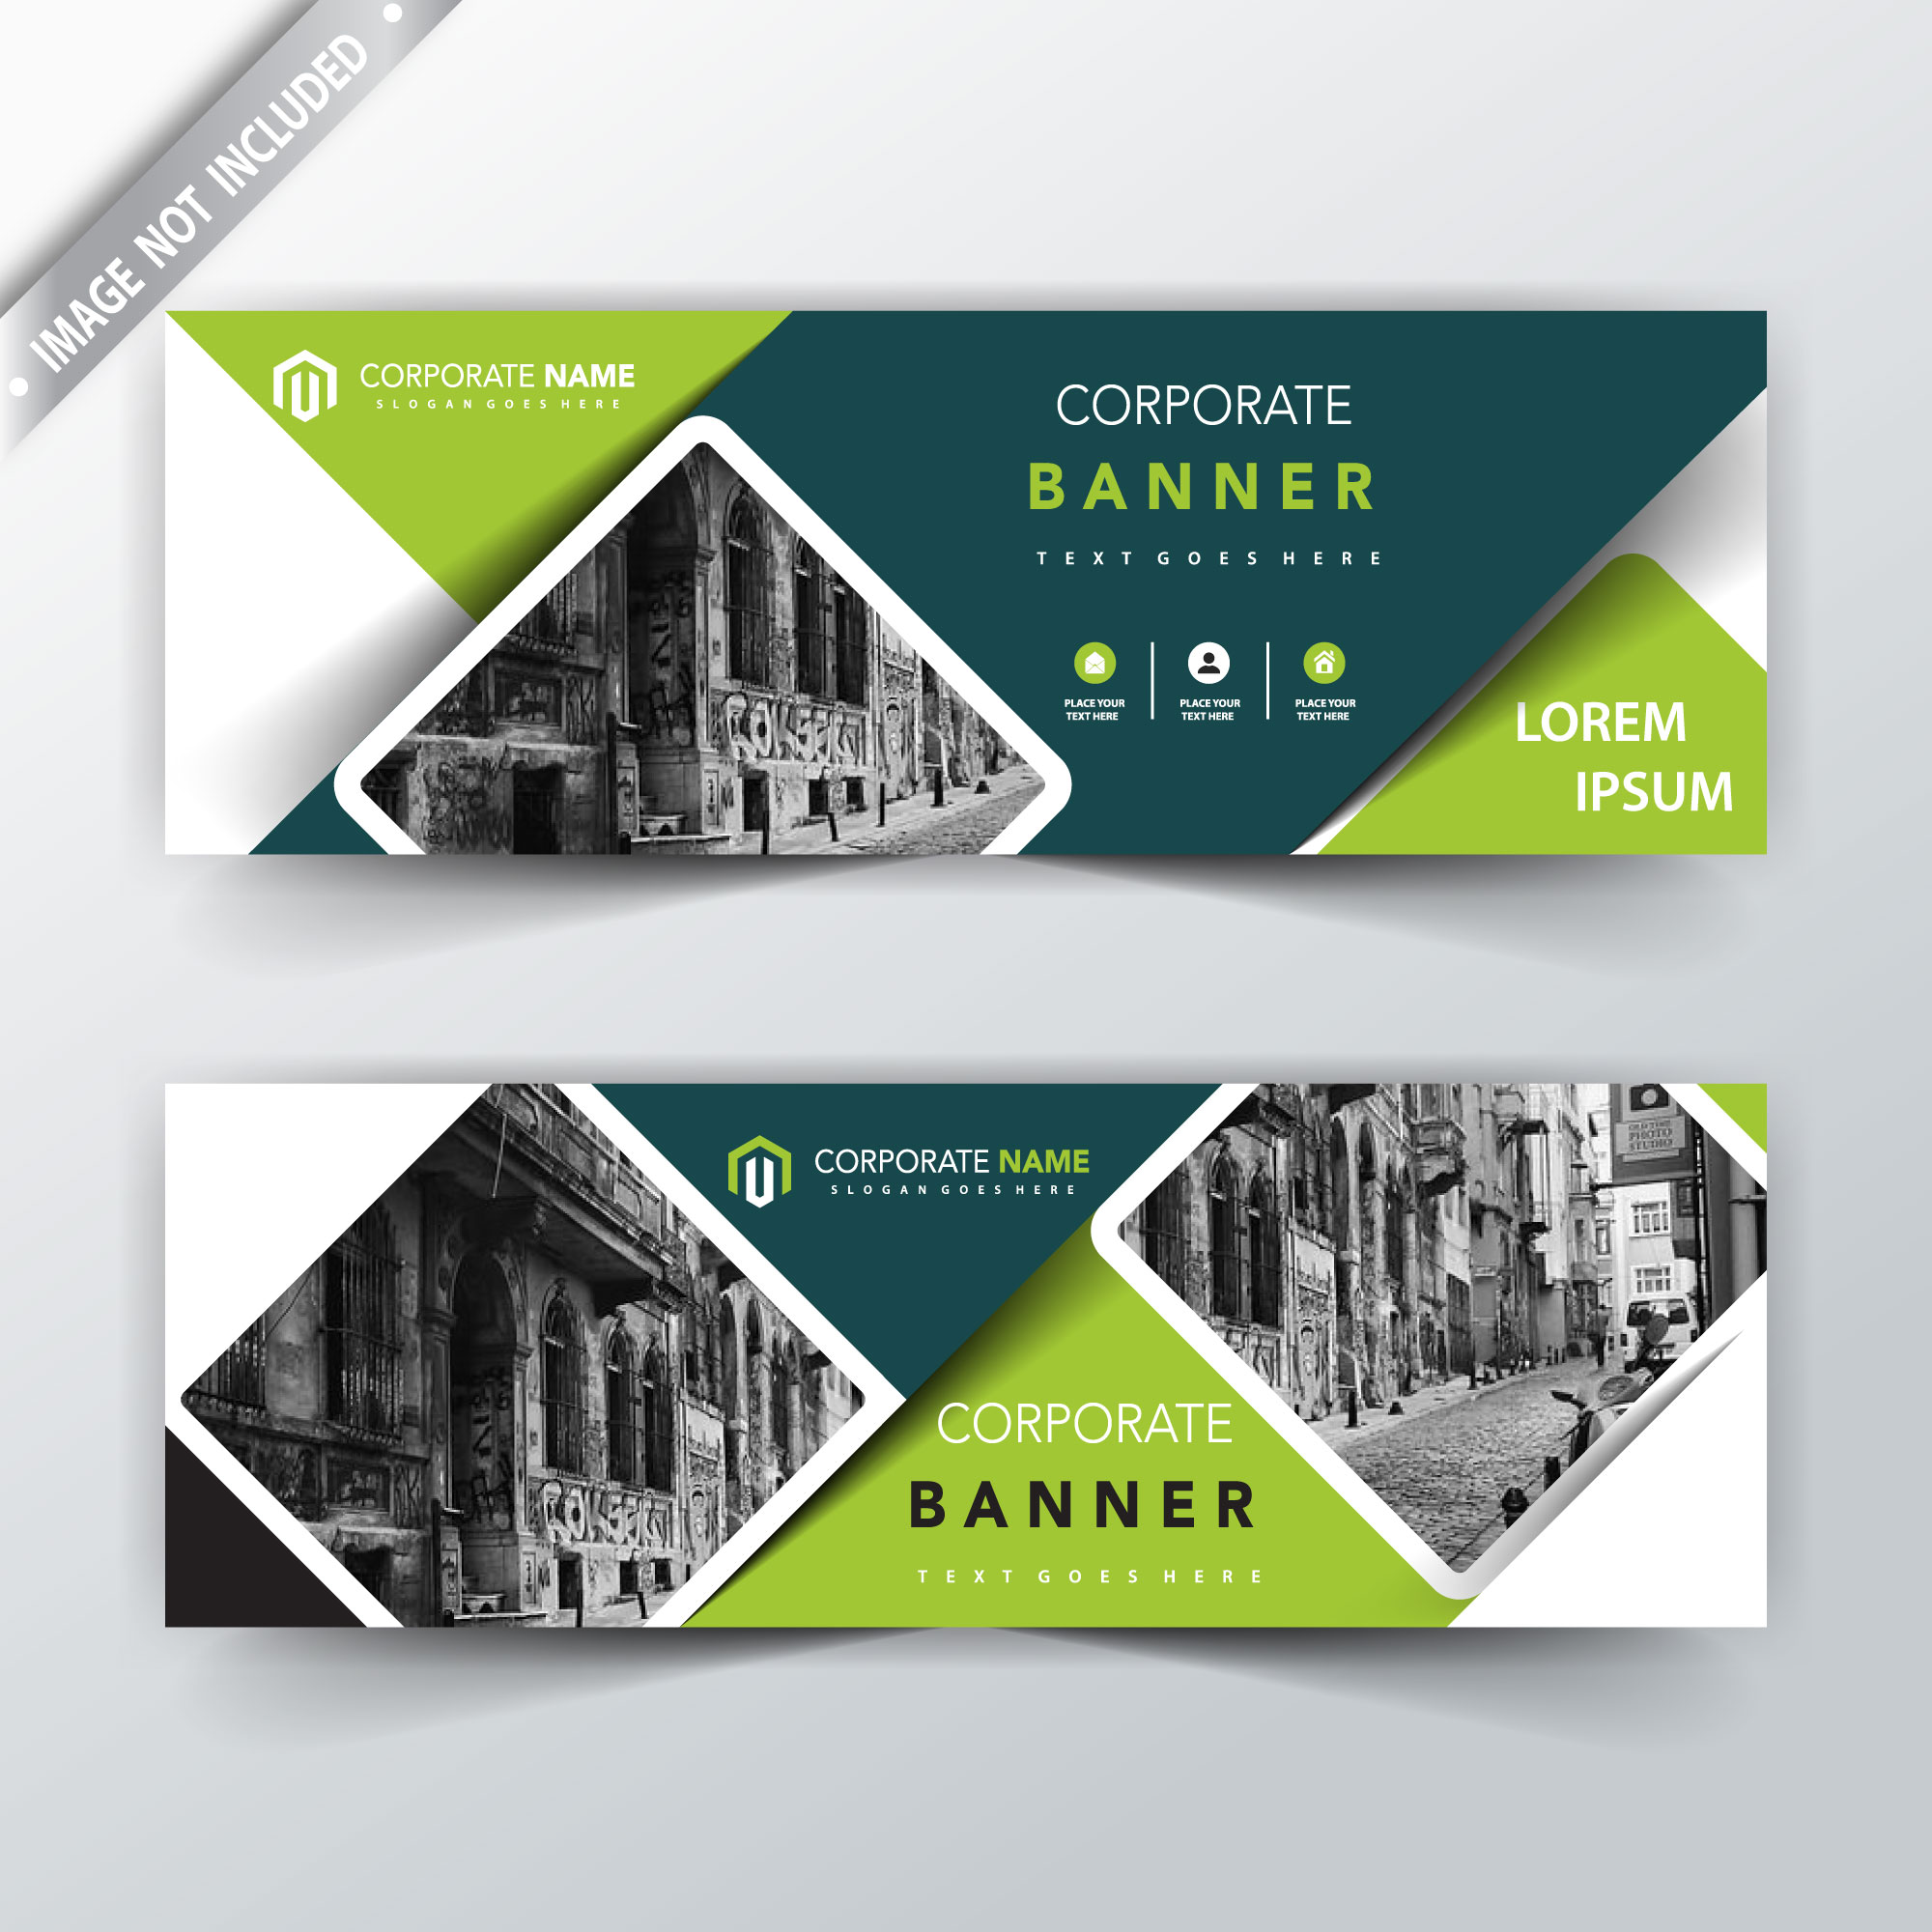 Green vector back and front banner design